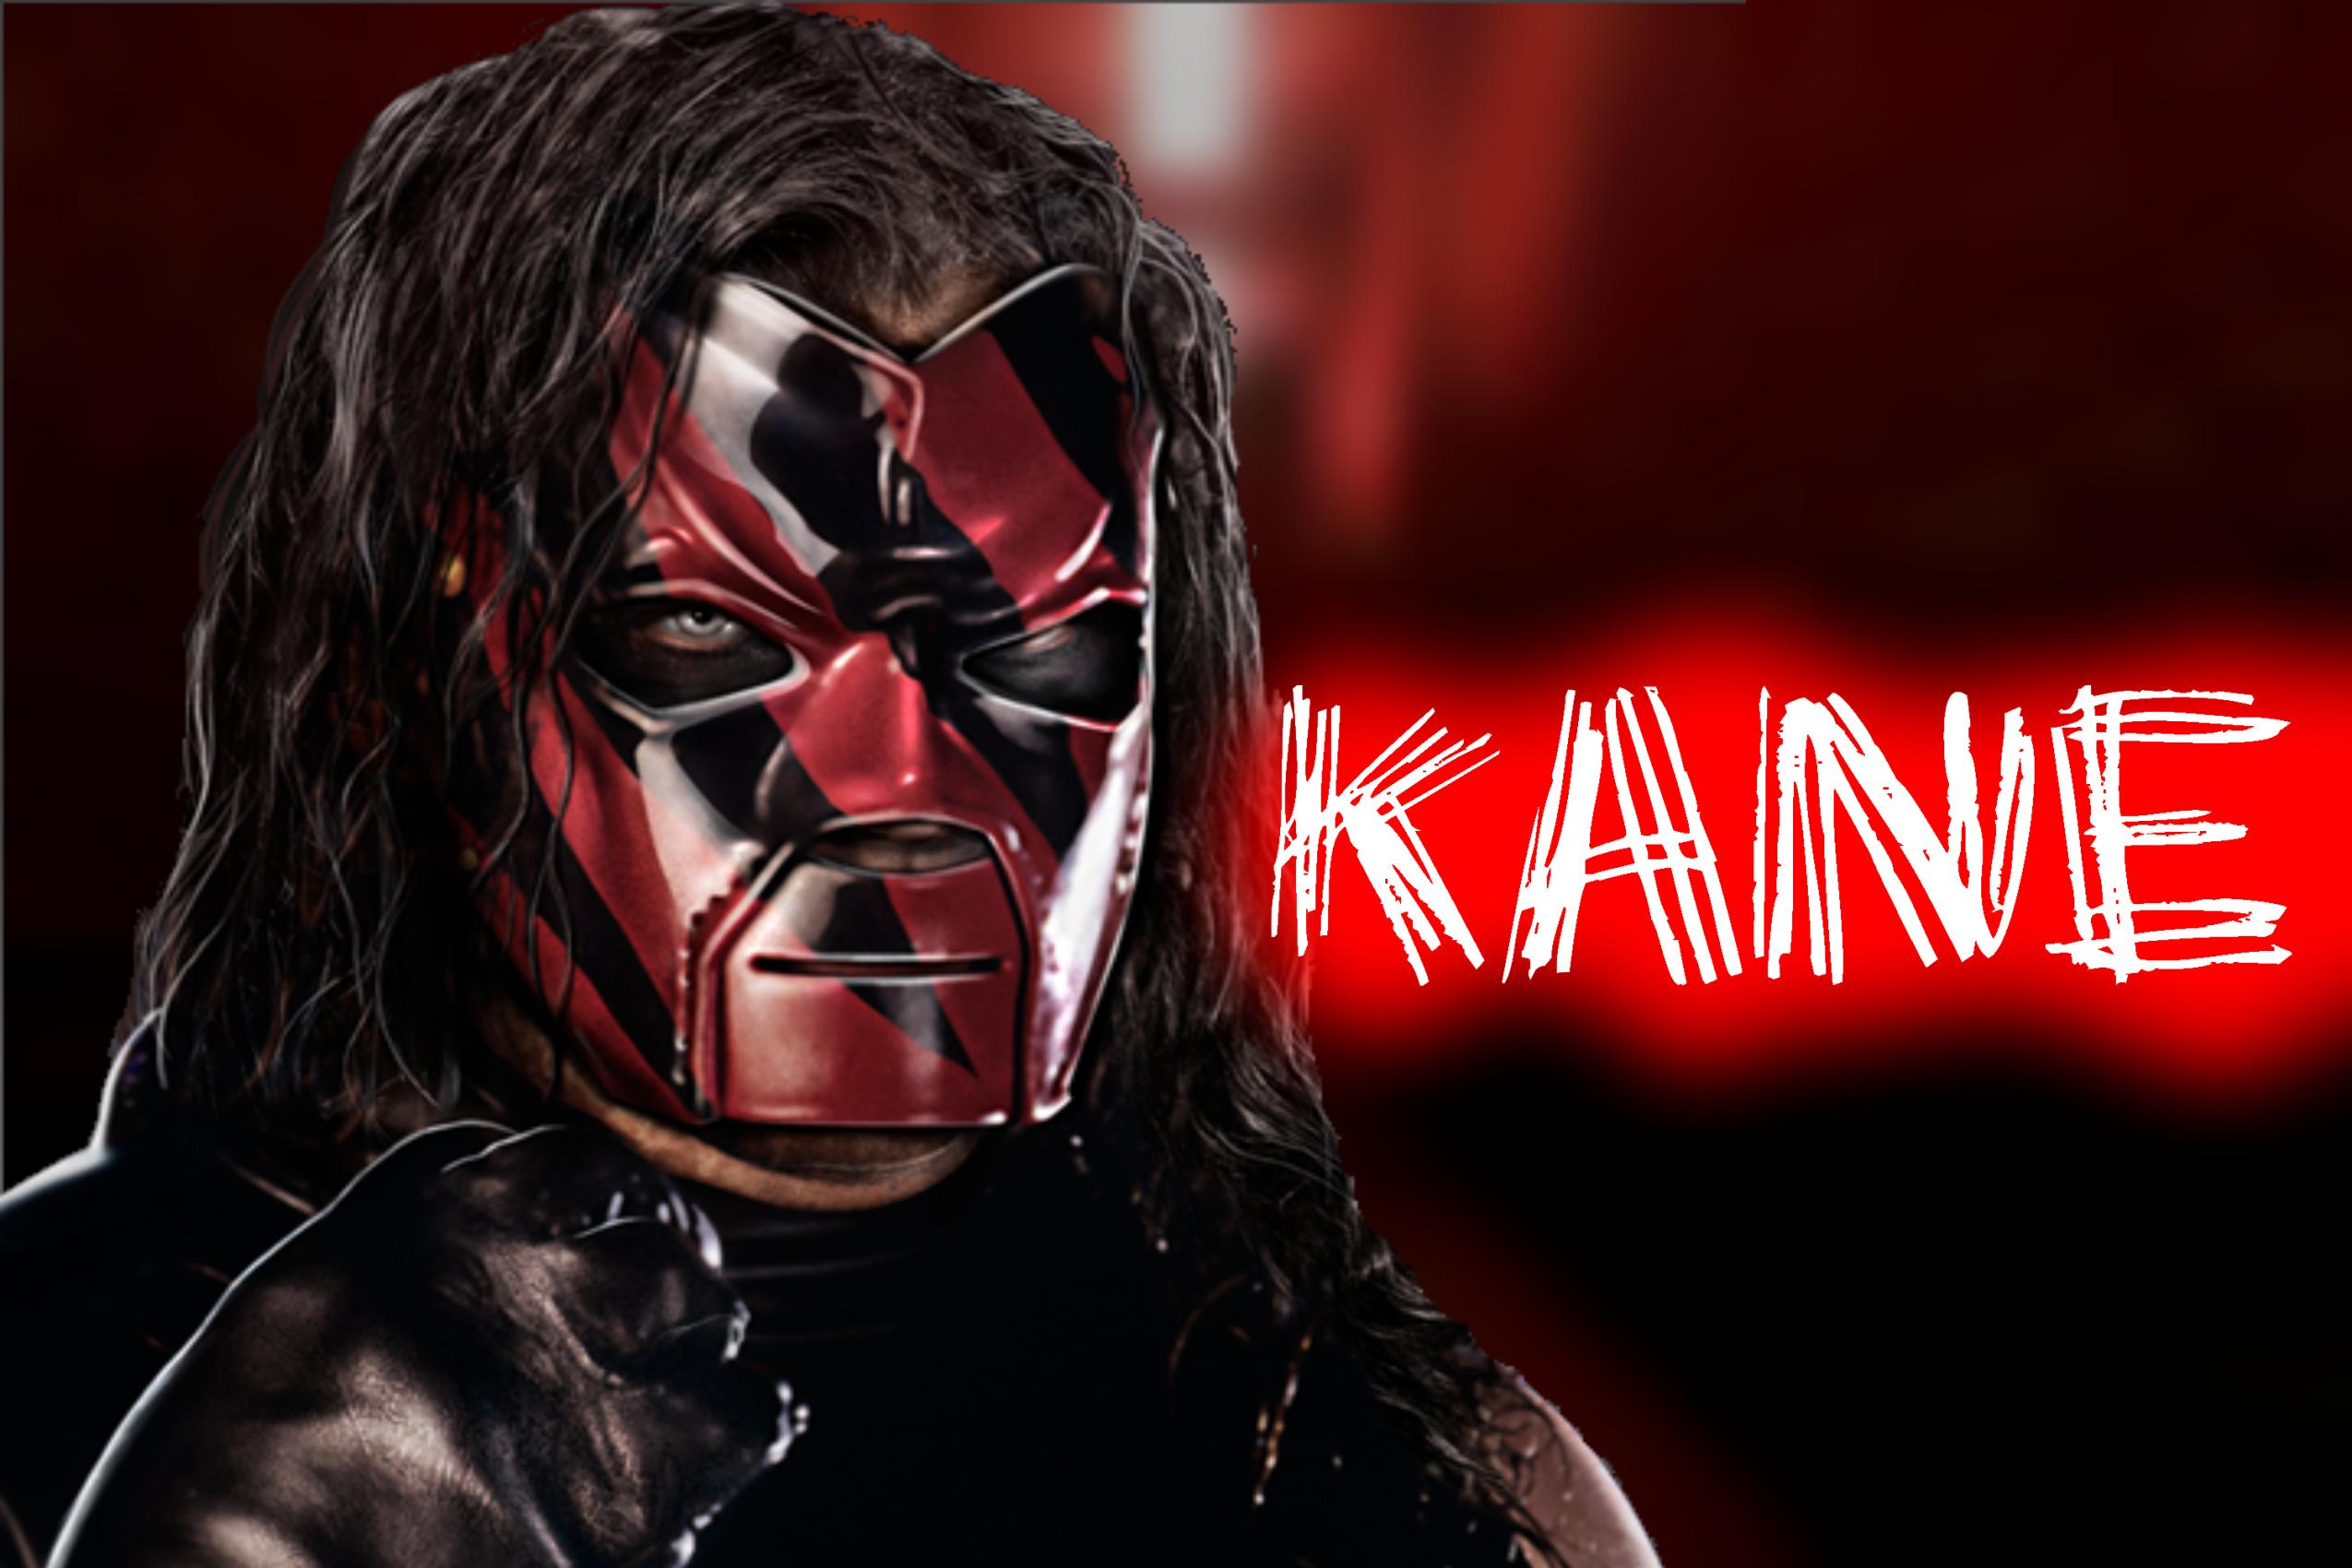 wwe wallpapers pictures images